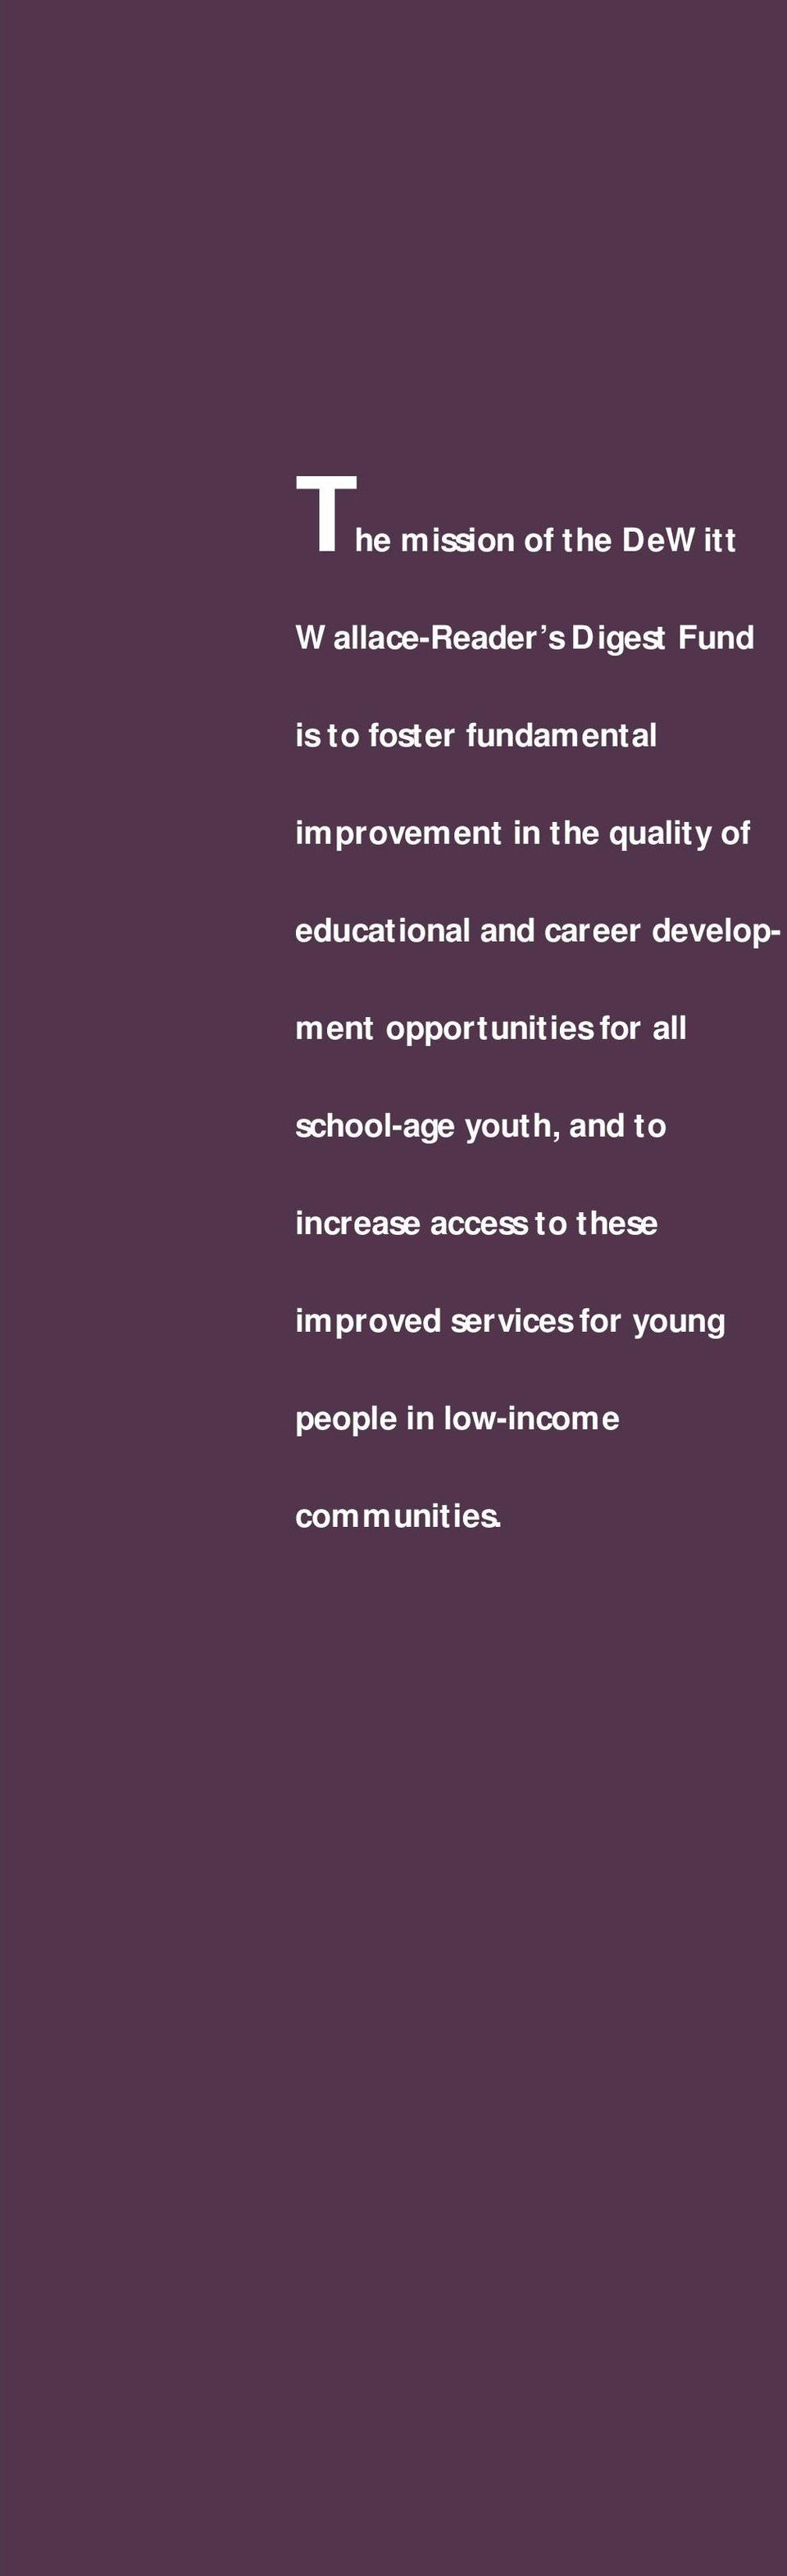 development opportunities for all school-age youth, and to increase